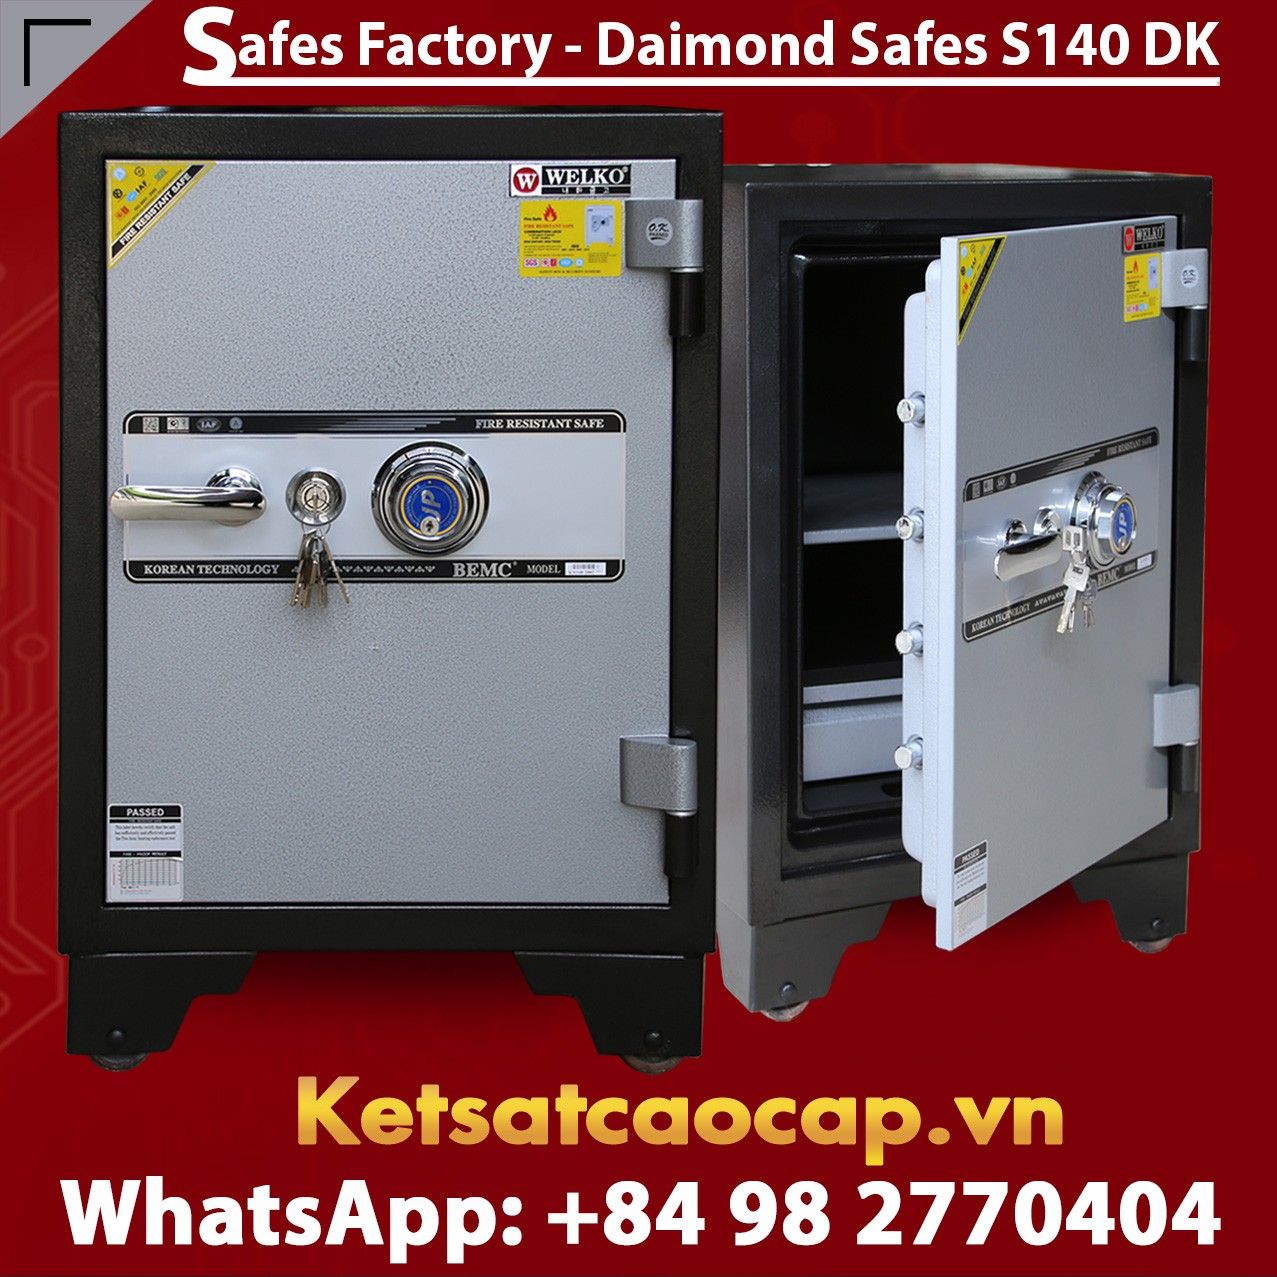 SECURITY STEEL SAFES S140 DK